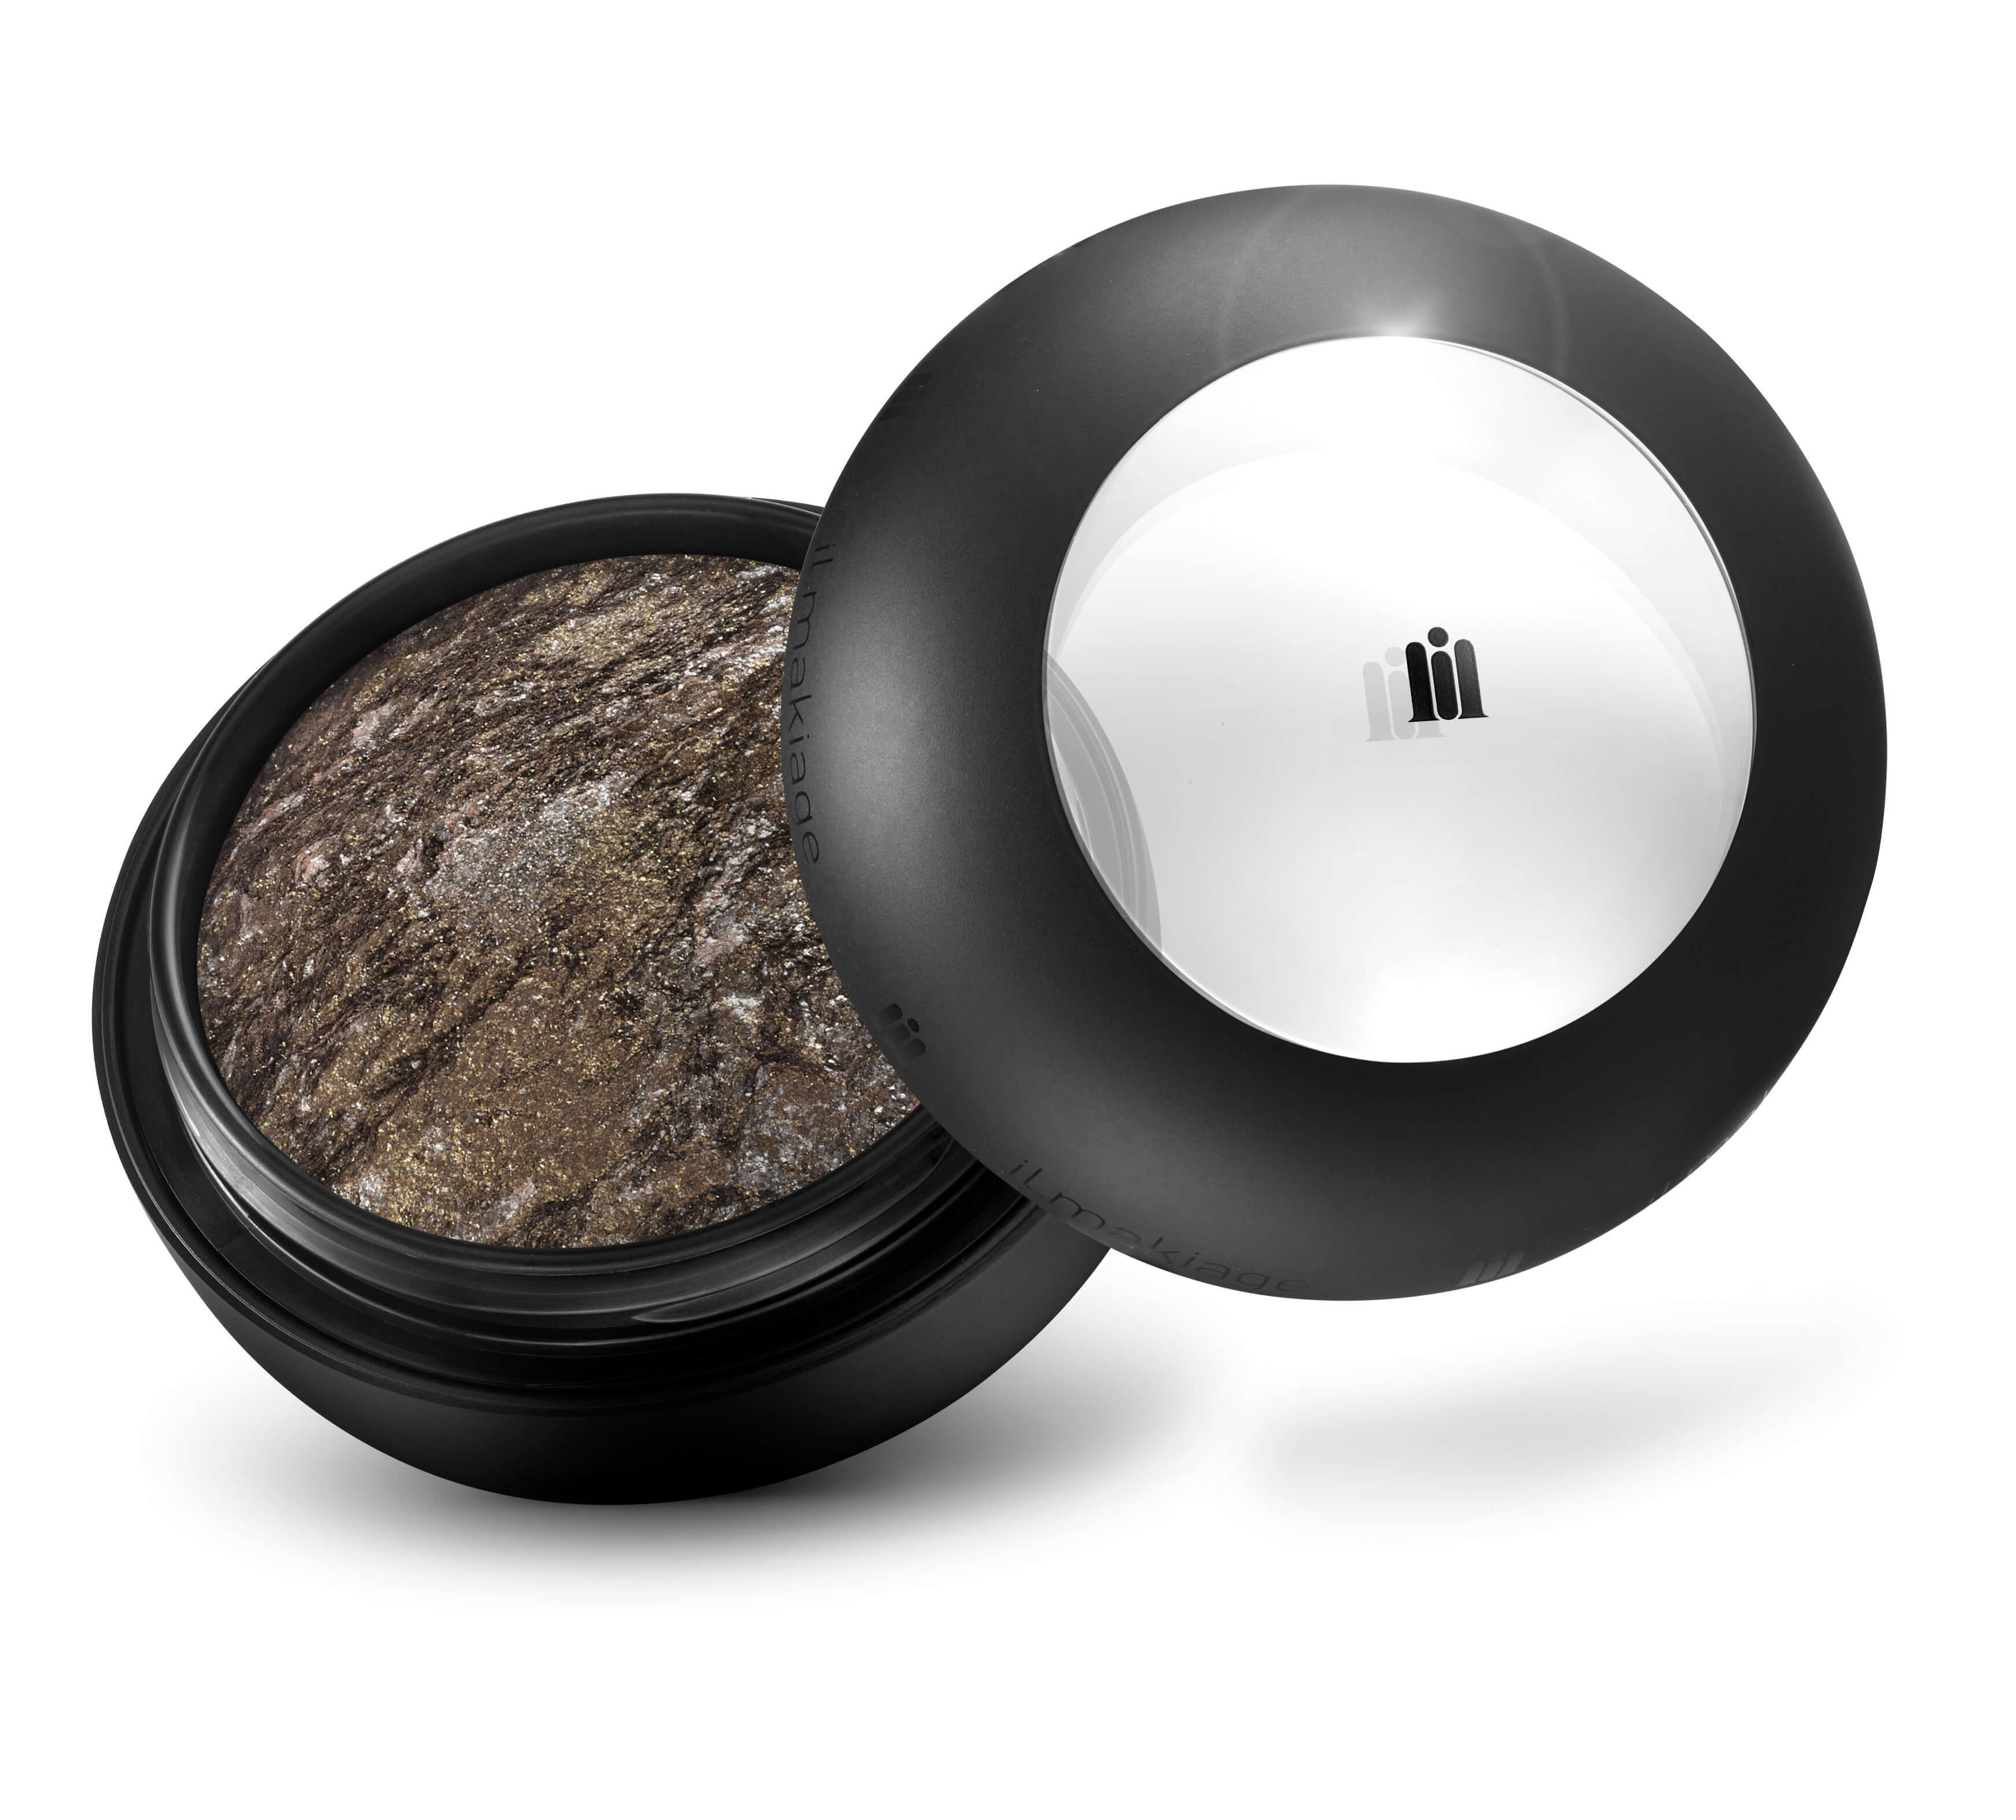 ILMAKIAGE_Mineral Baked Eye Shadow _Adele _150 NIS - Copy